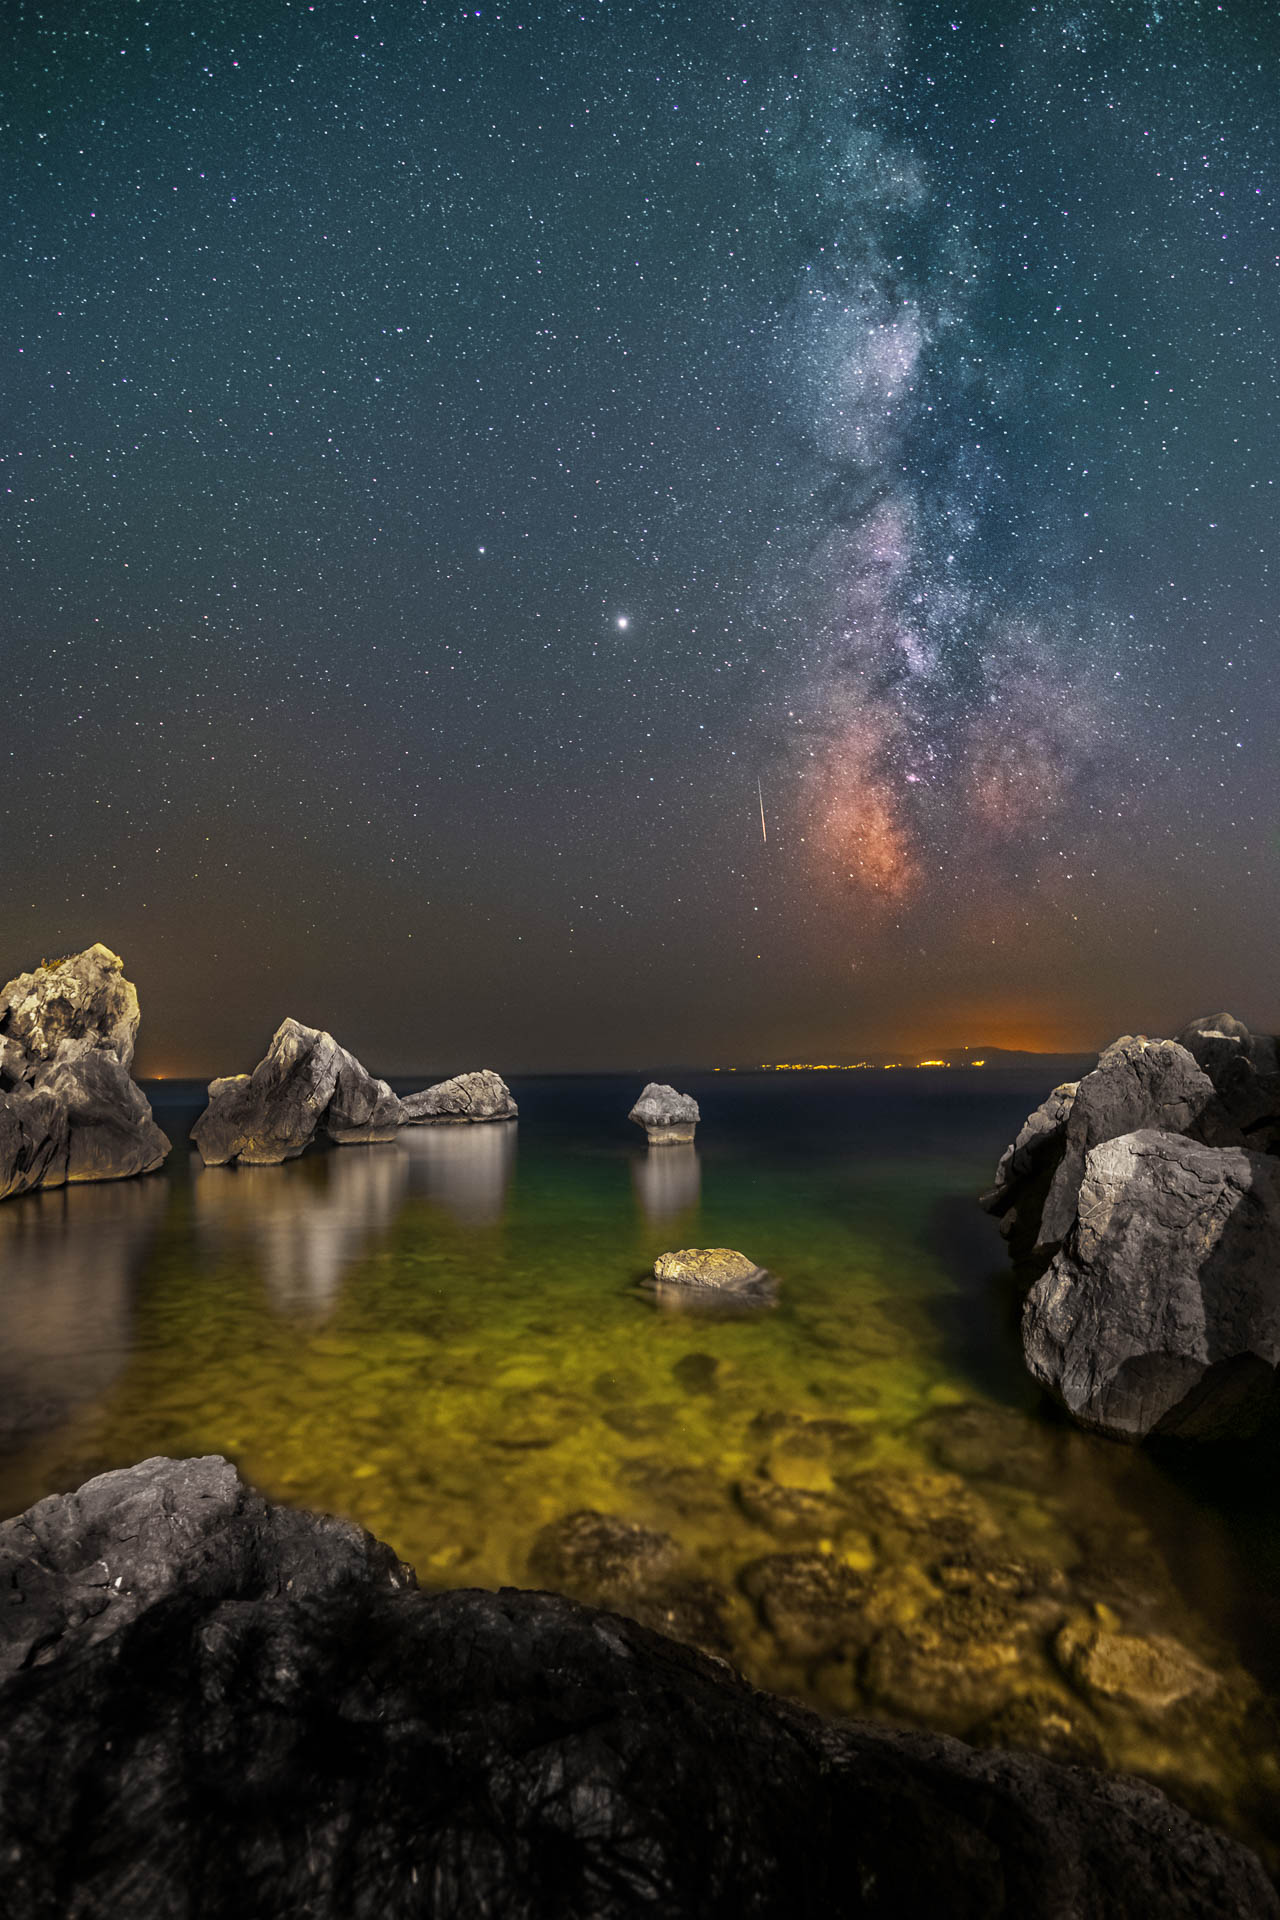 Seascape with perseids meteor shower in front of the mikly way core